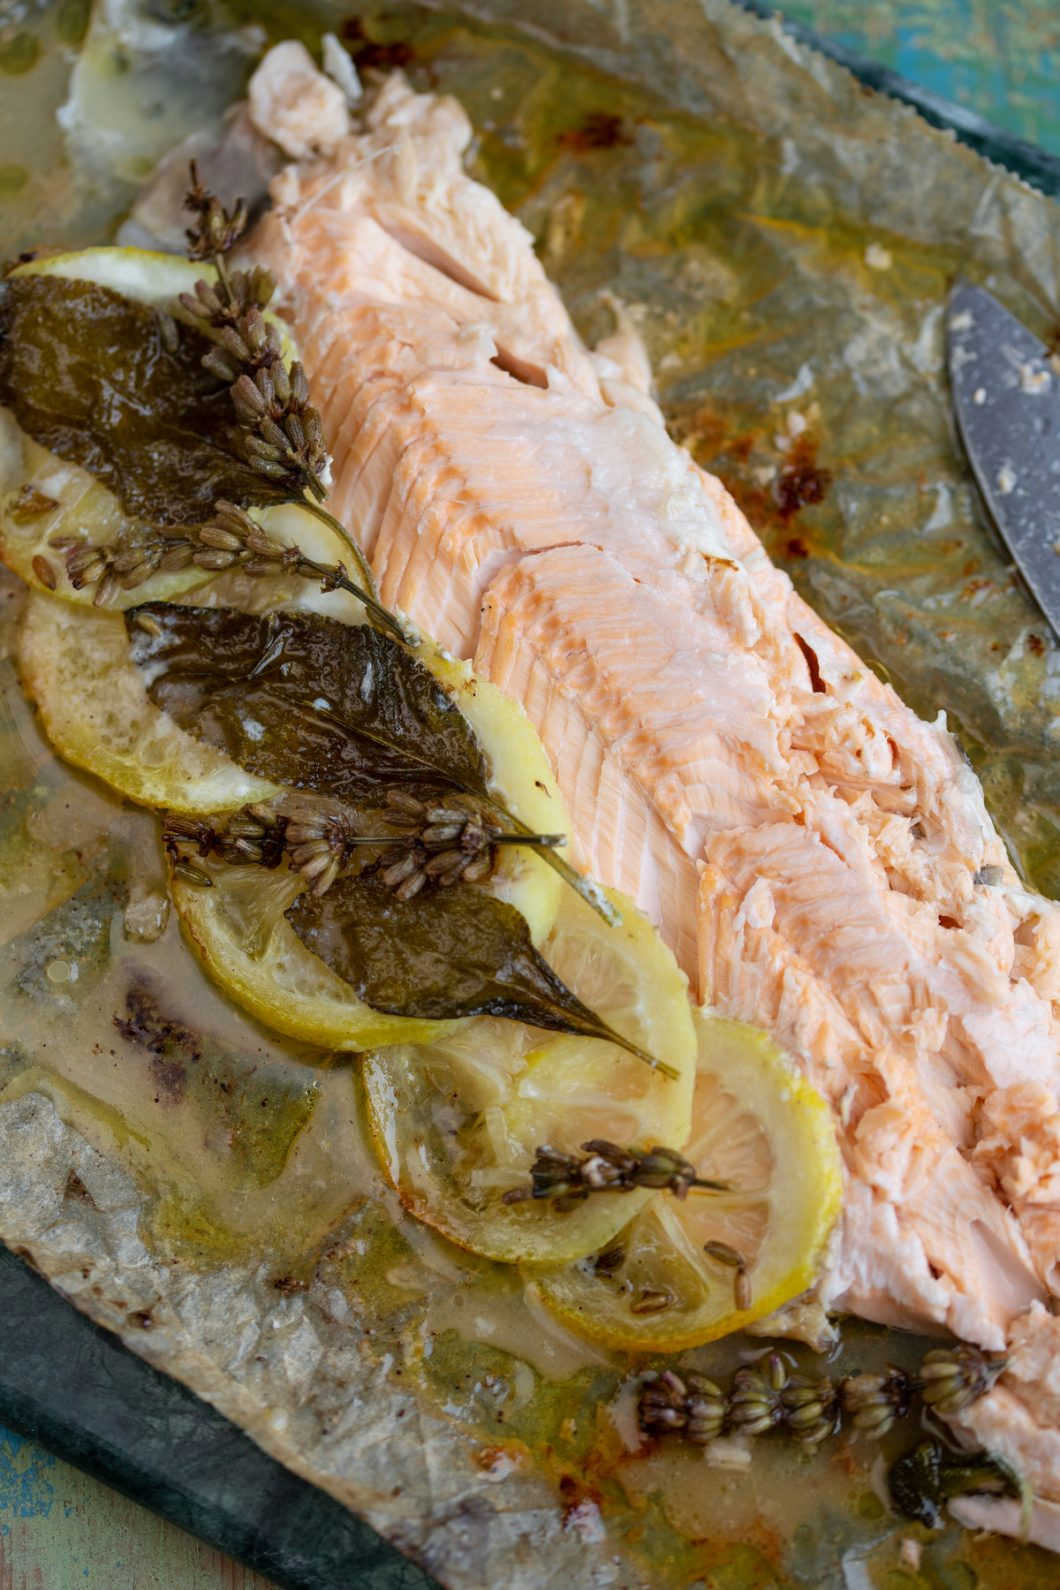 Filleted baked trout exposing the stuffing.